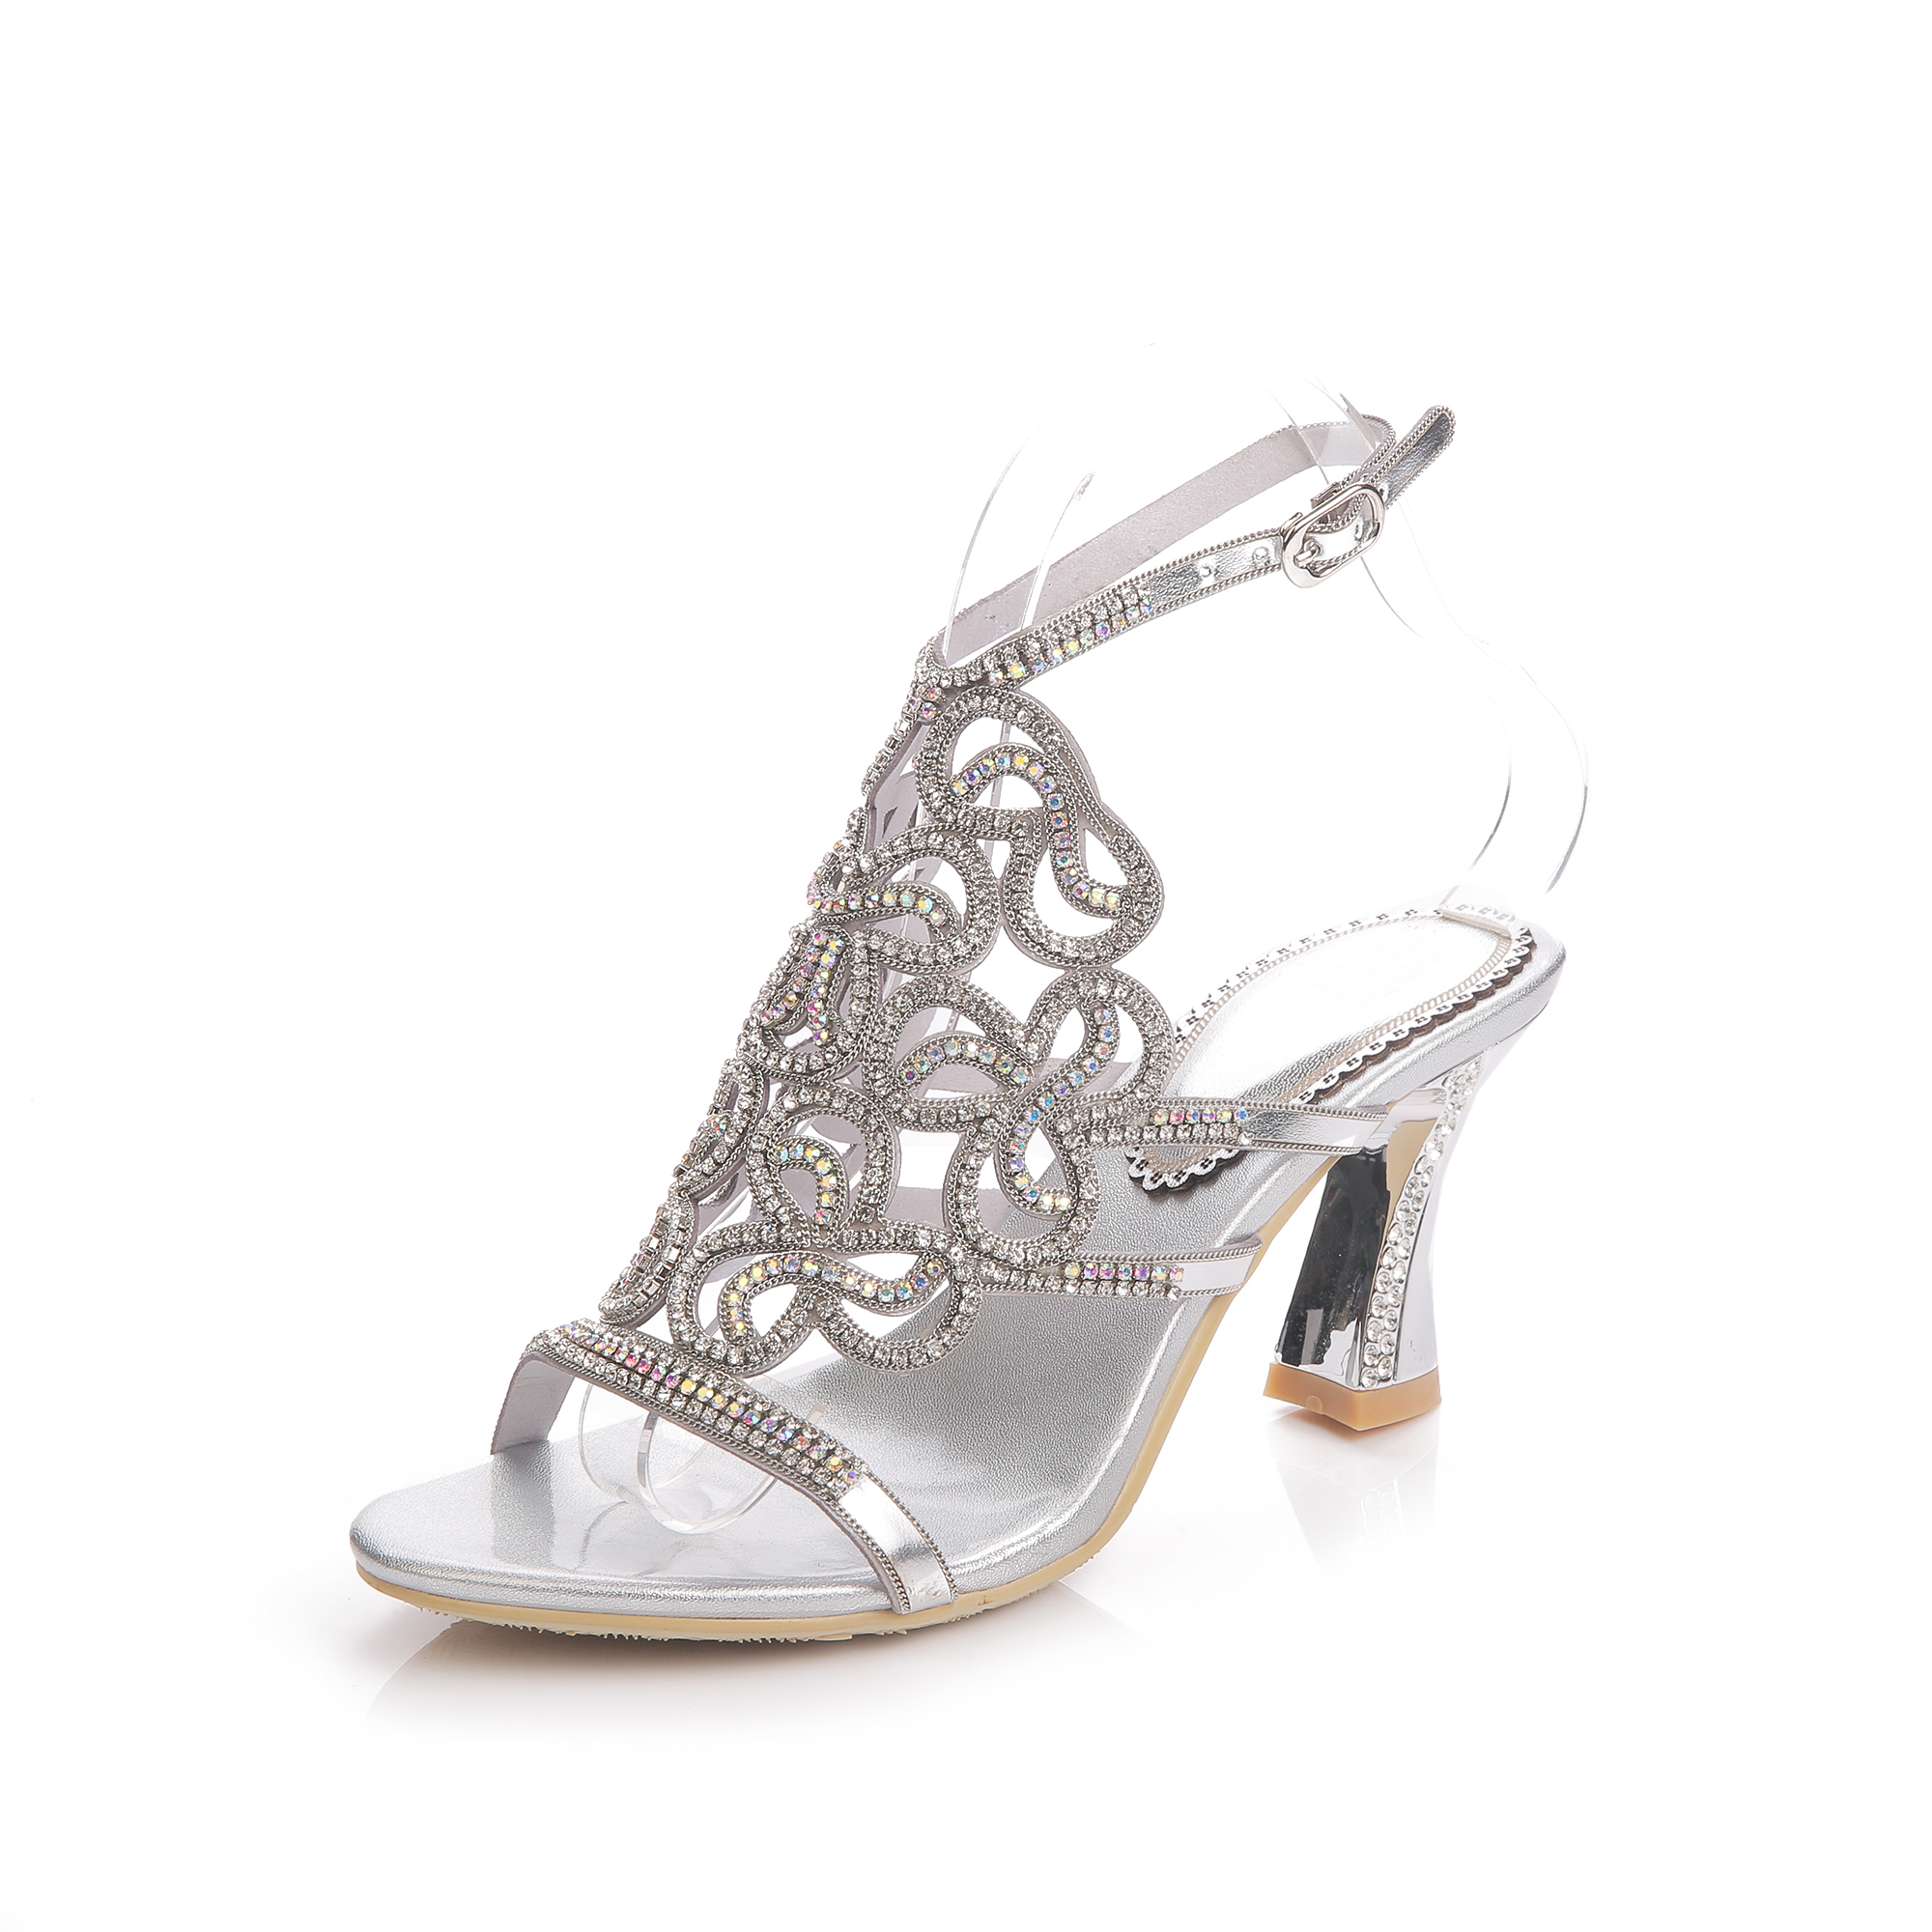 059366ea8d0d Silver Rhinestone Sandals Crystal High Heel Shoes Wedding Shoes Black Gold  Strappy Heels Sandales Femme 8cm